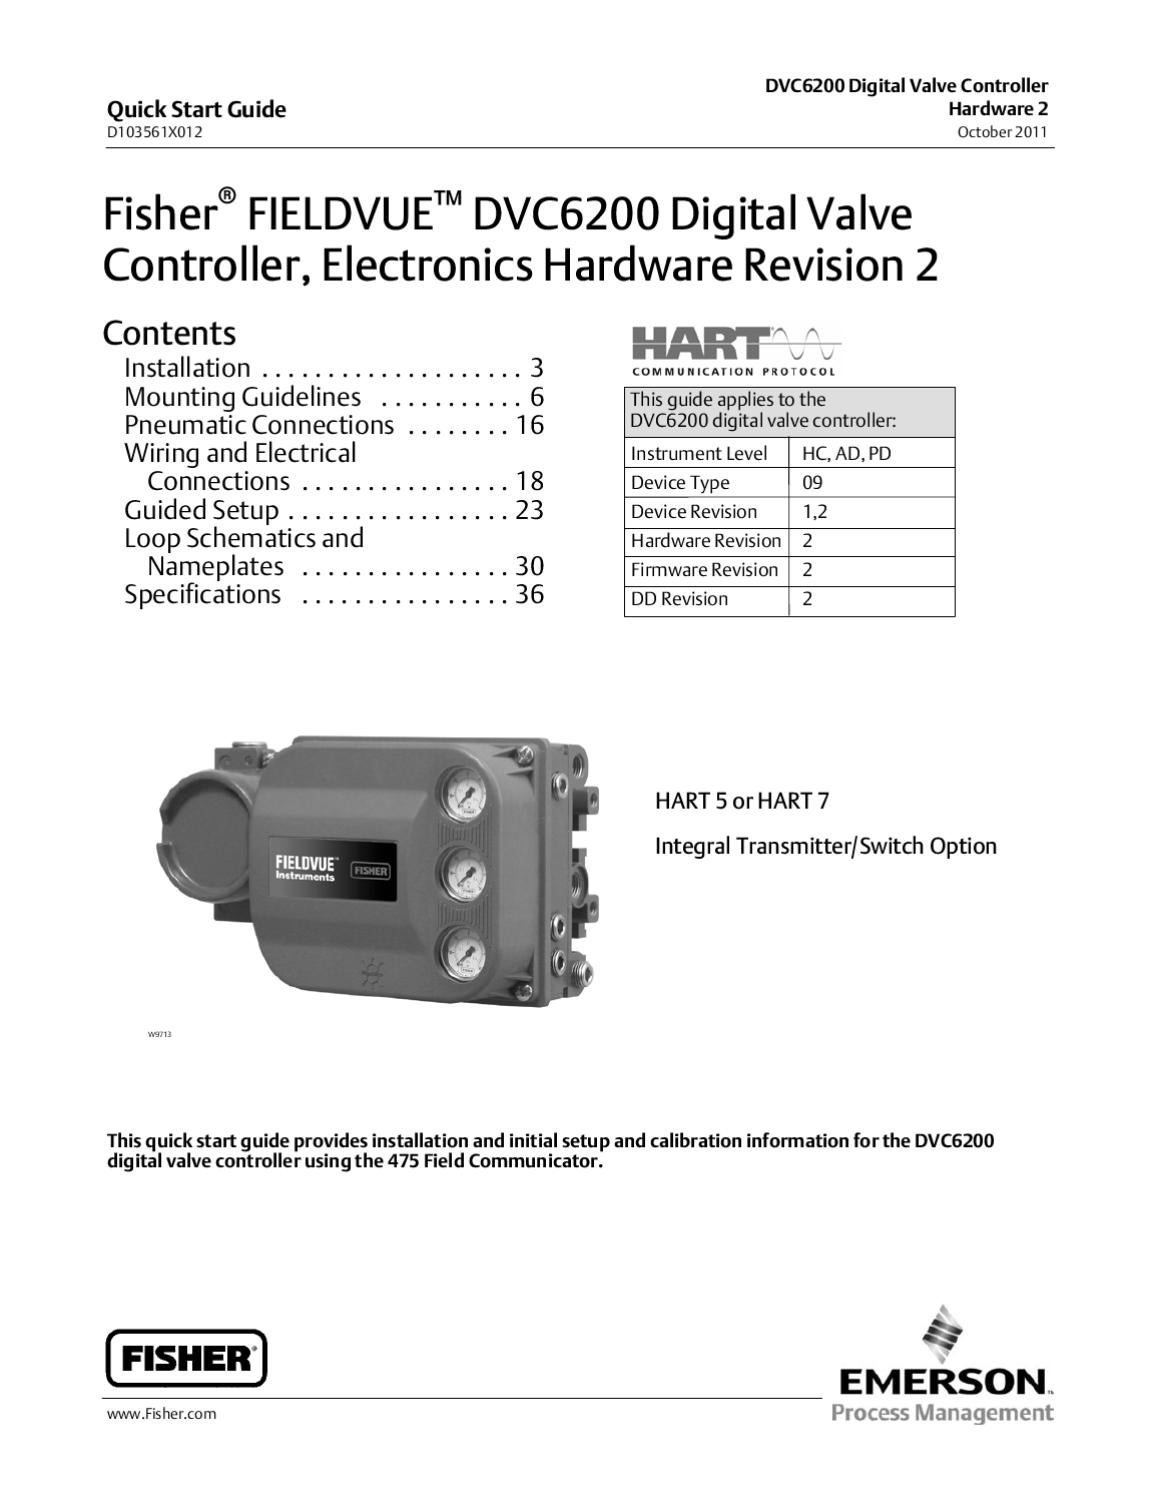 page_1 dvc6200 quick start guide elctrncs hrdwre rev 2 oct 2011 by rmc fisher dvc 2000 wiring diagram at virtualis.co